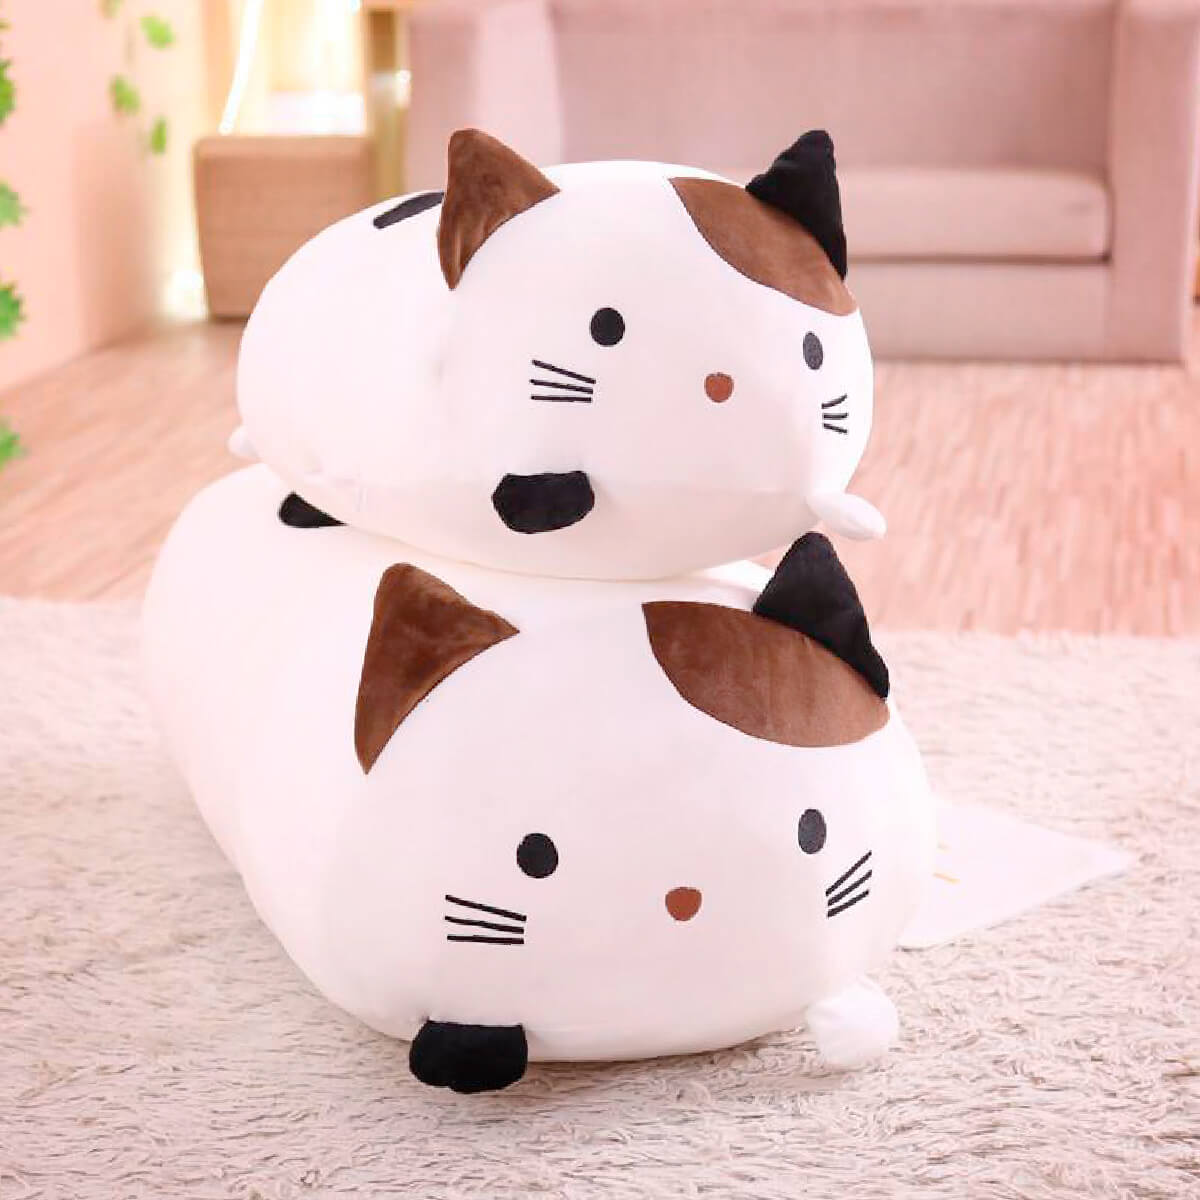 Cute Kawai Cat Pillows - two cat pillow size comparison with white variant